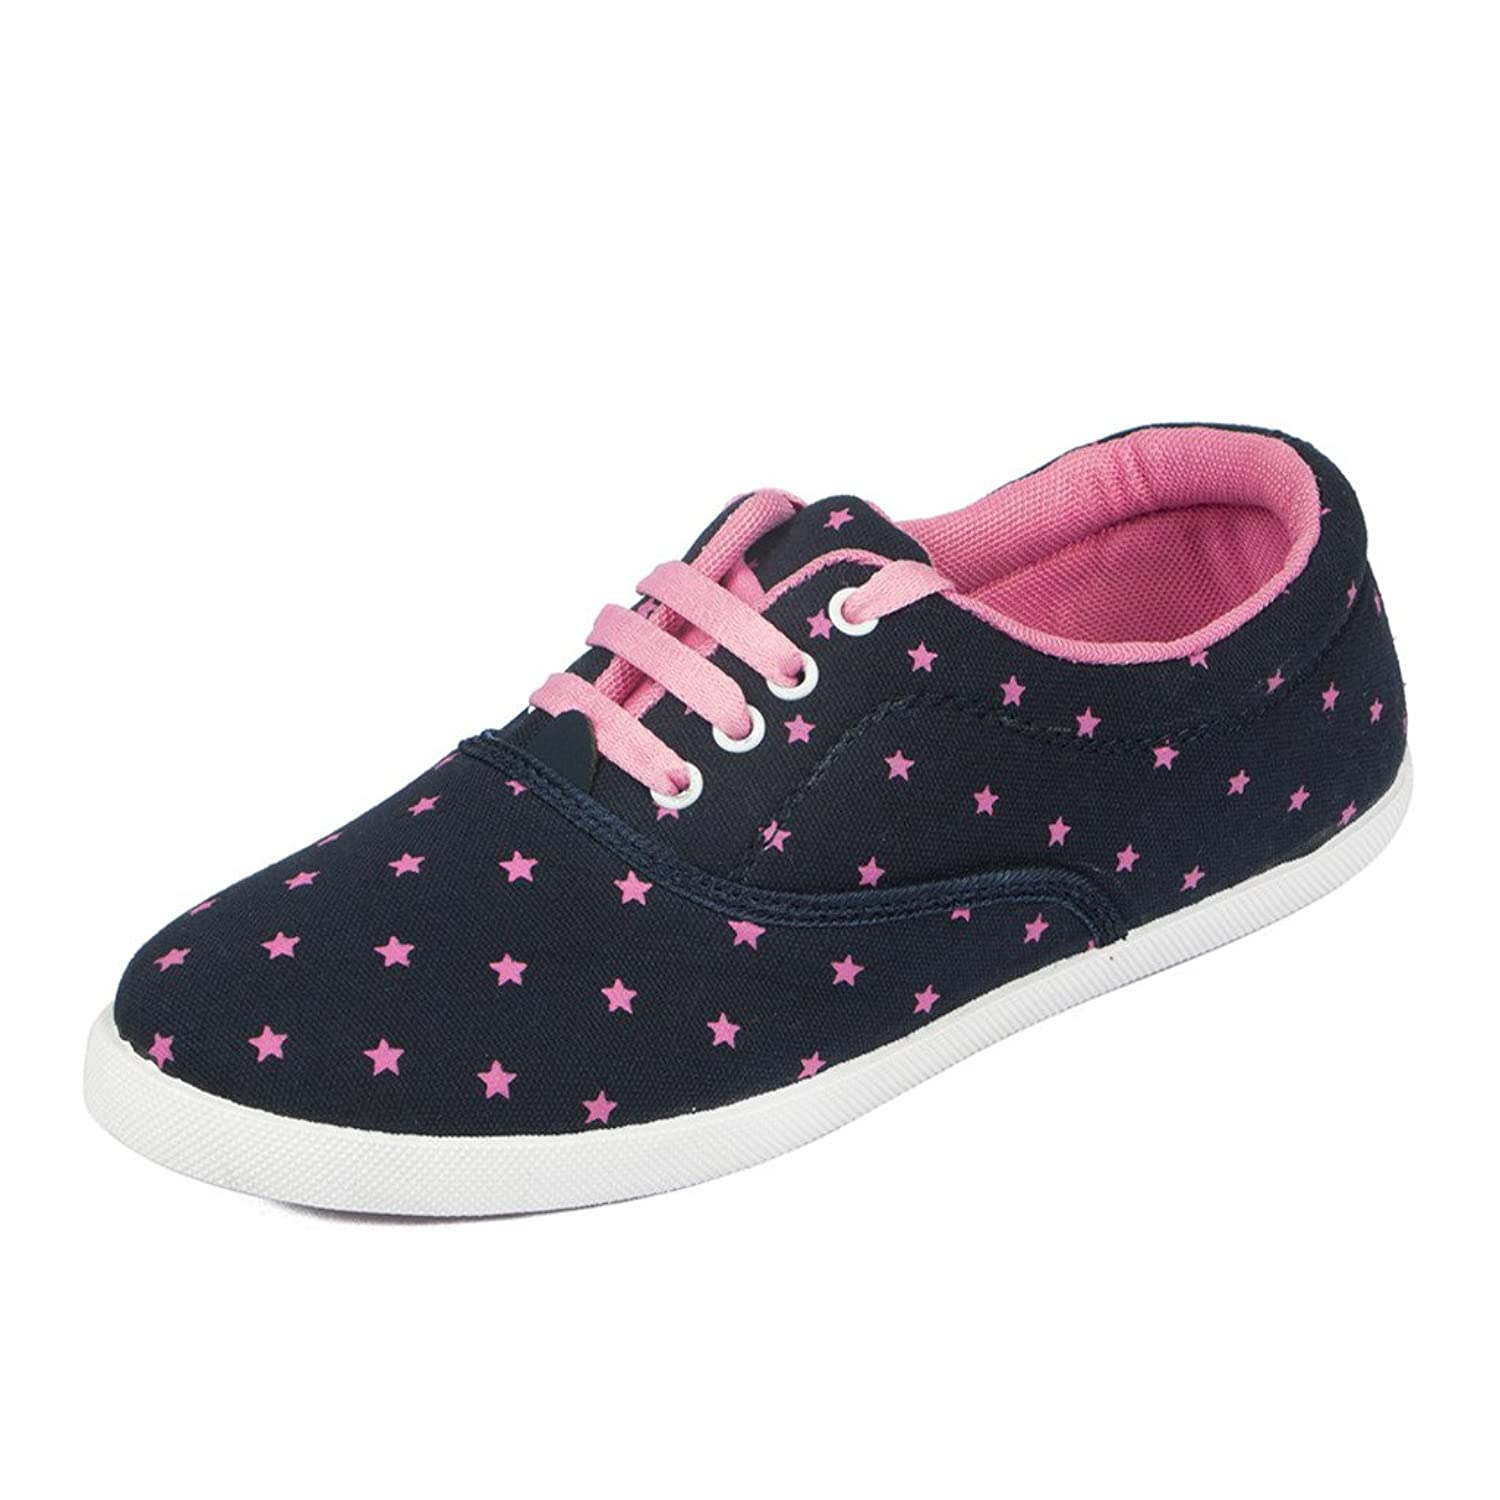 Asian shoes RL-23 Navy Blue Pink Canvas Women Shoes: Buy Online at ...